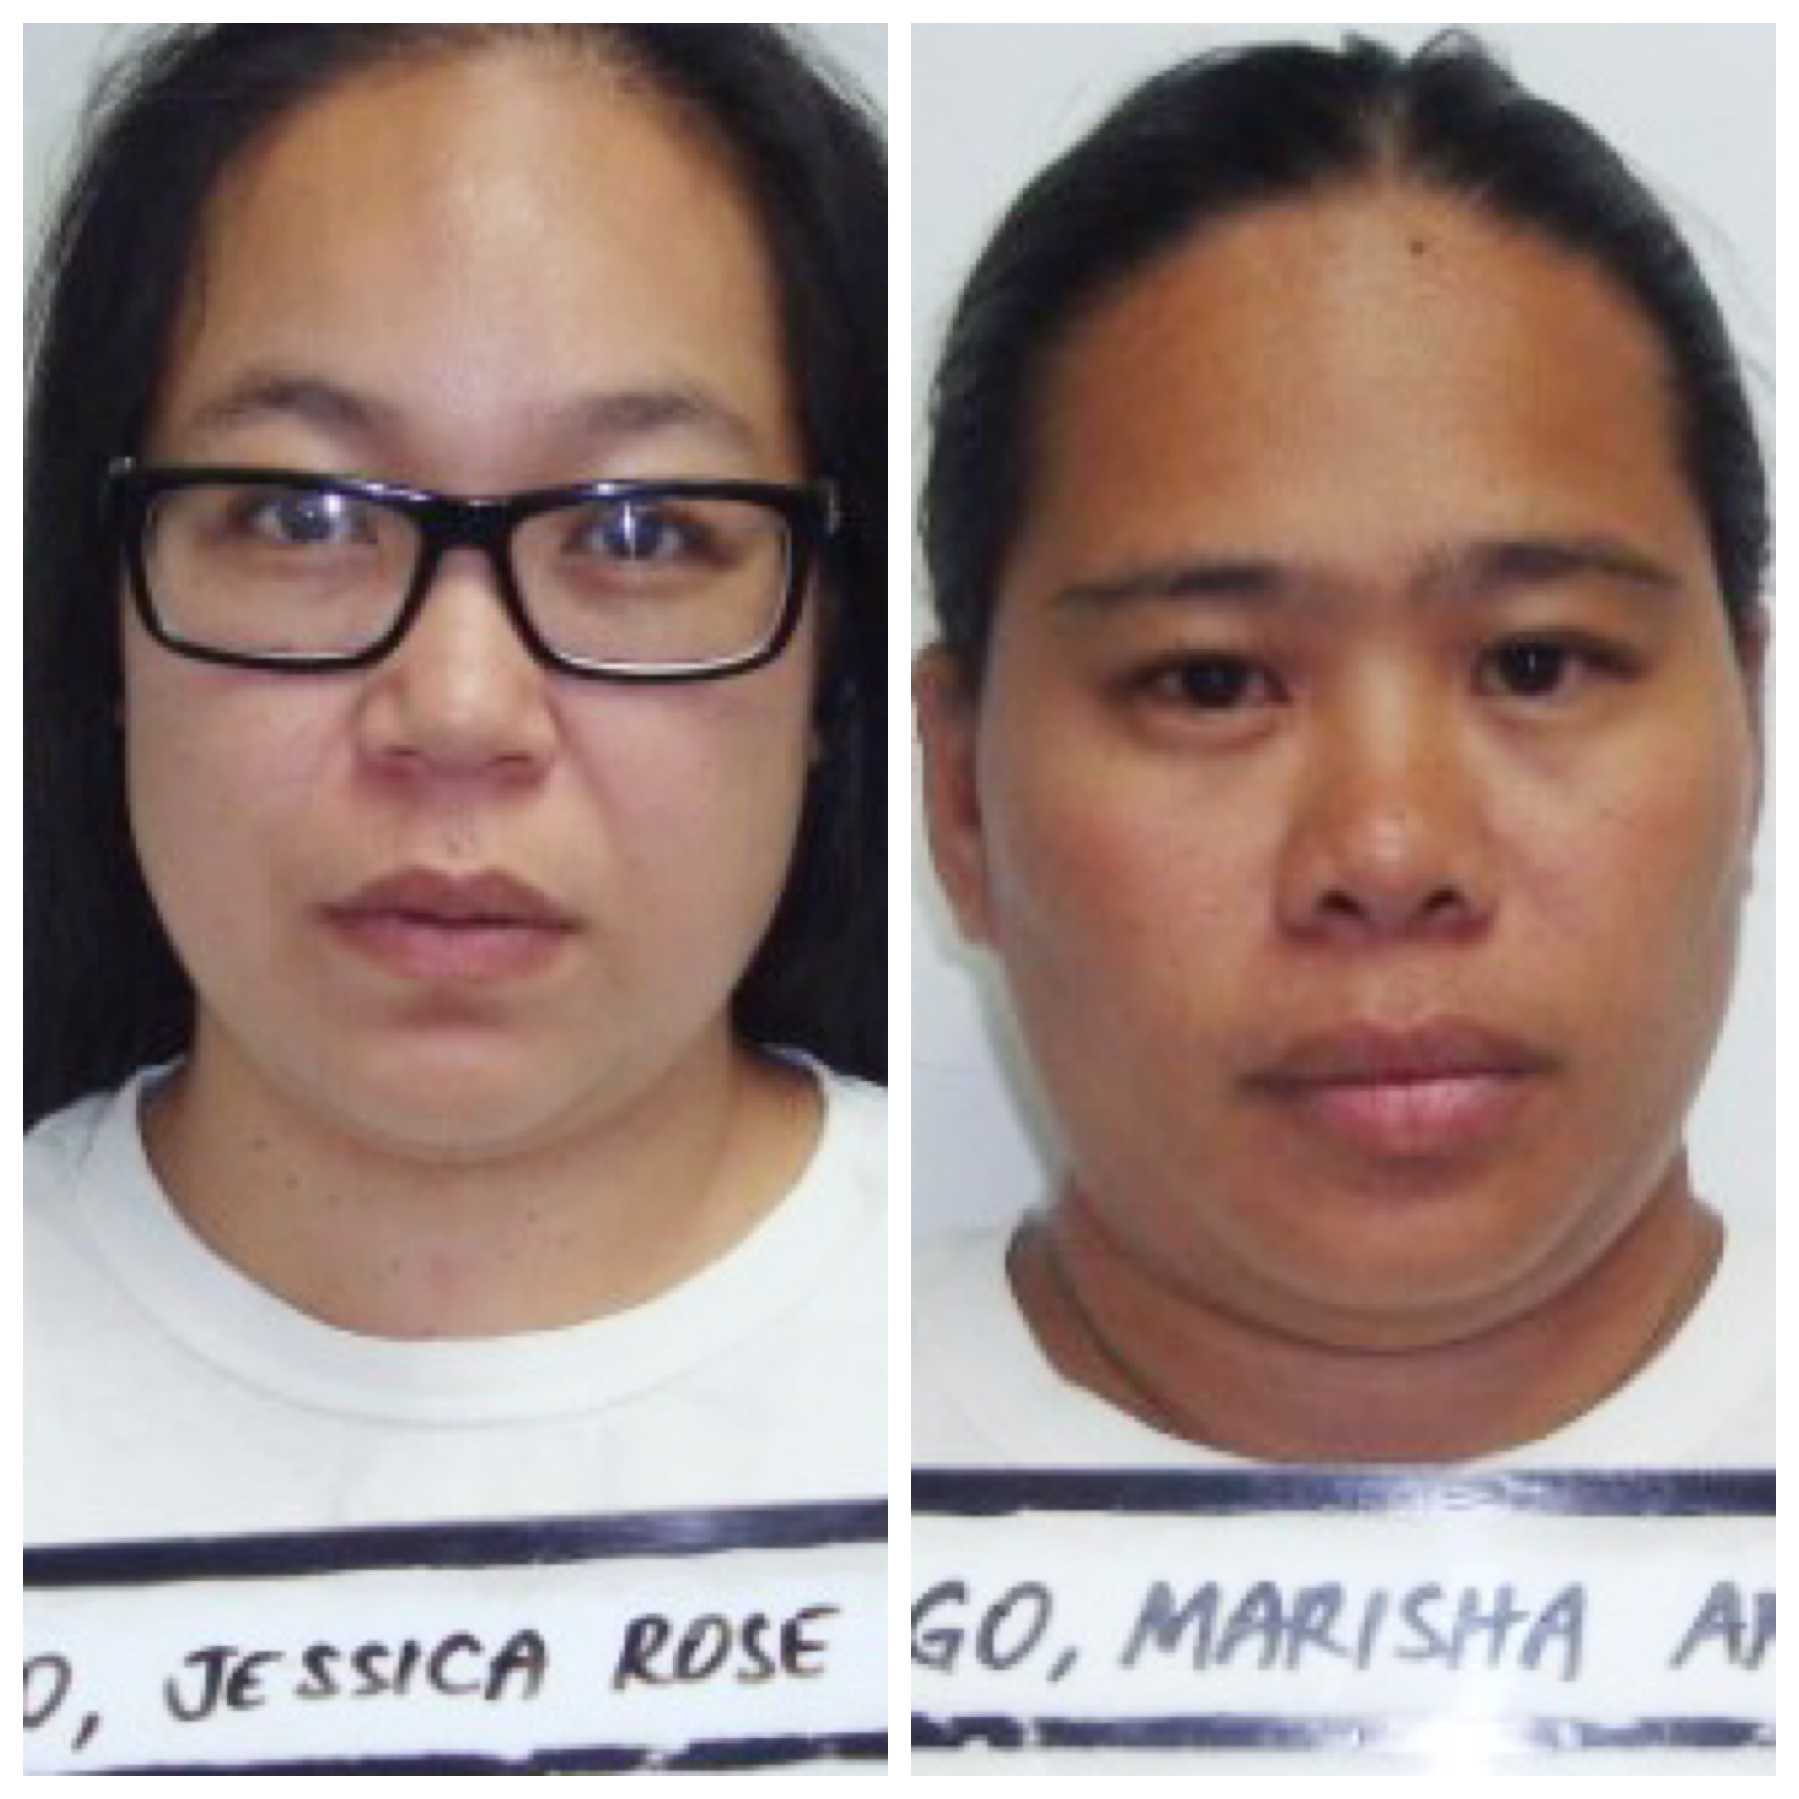 Jessica Rose Tainatongo and Marisha Ann Fegurgur Rabago are accused of stealing over $230K